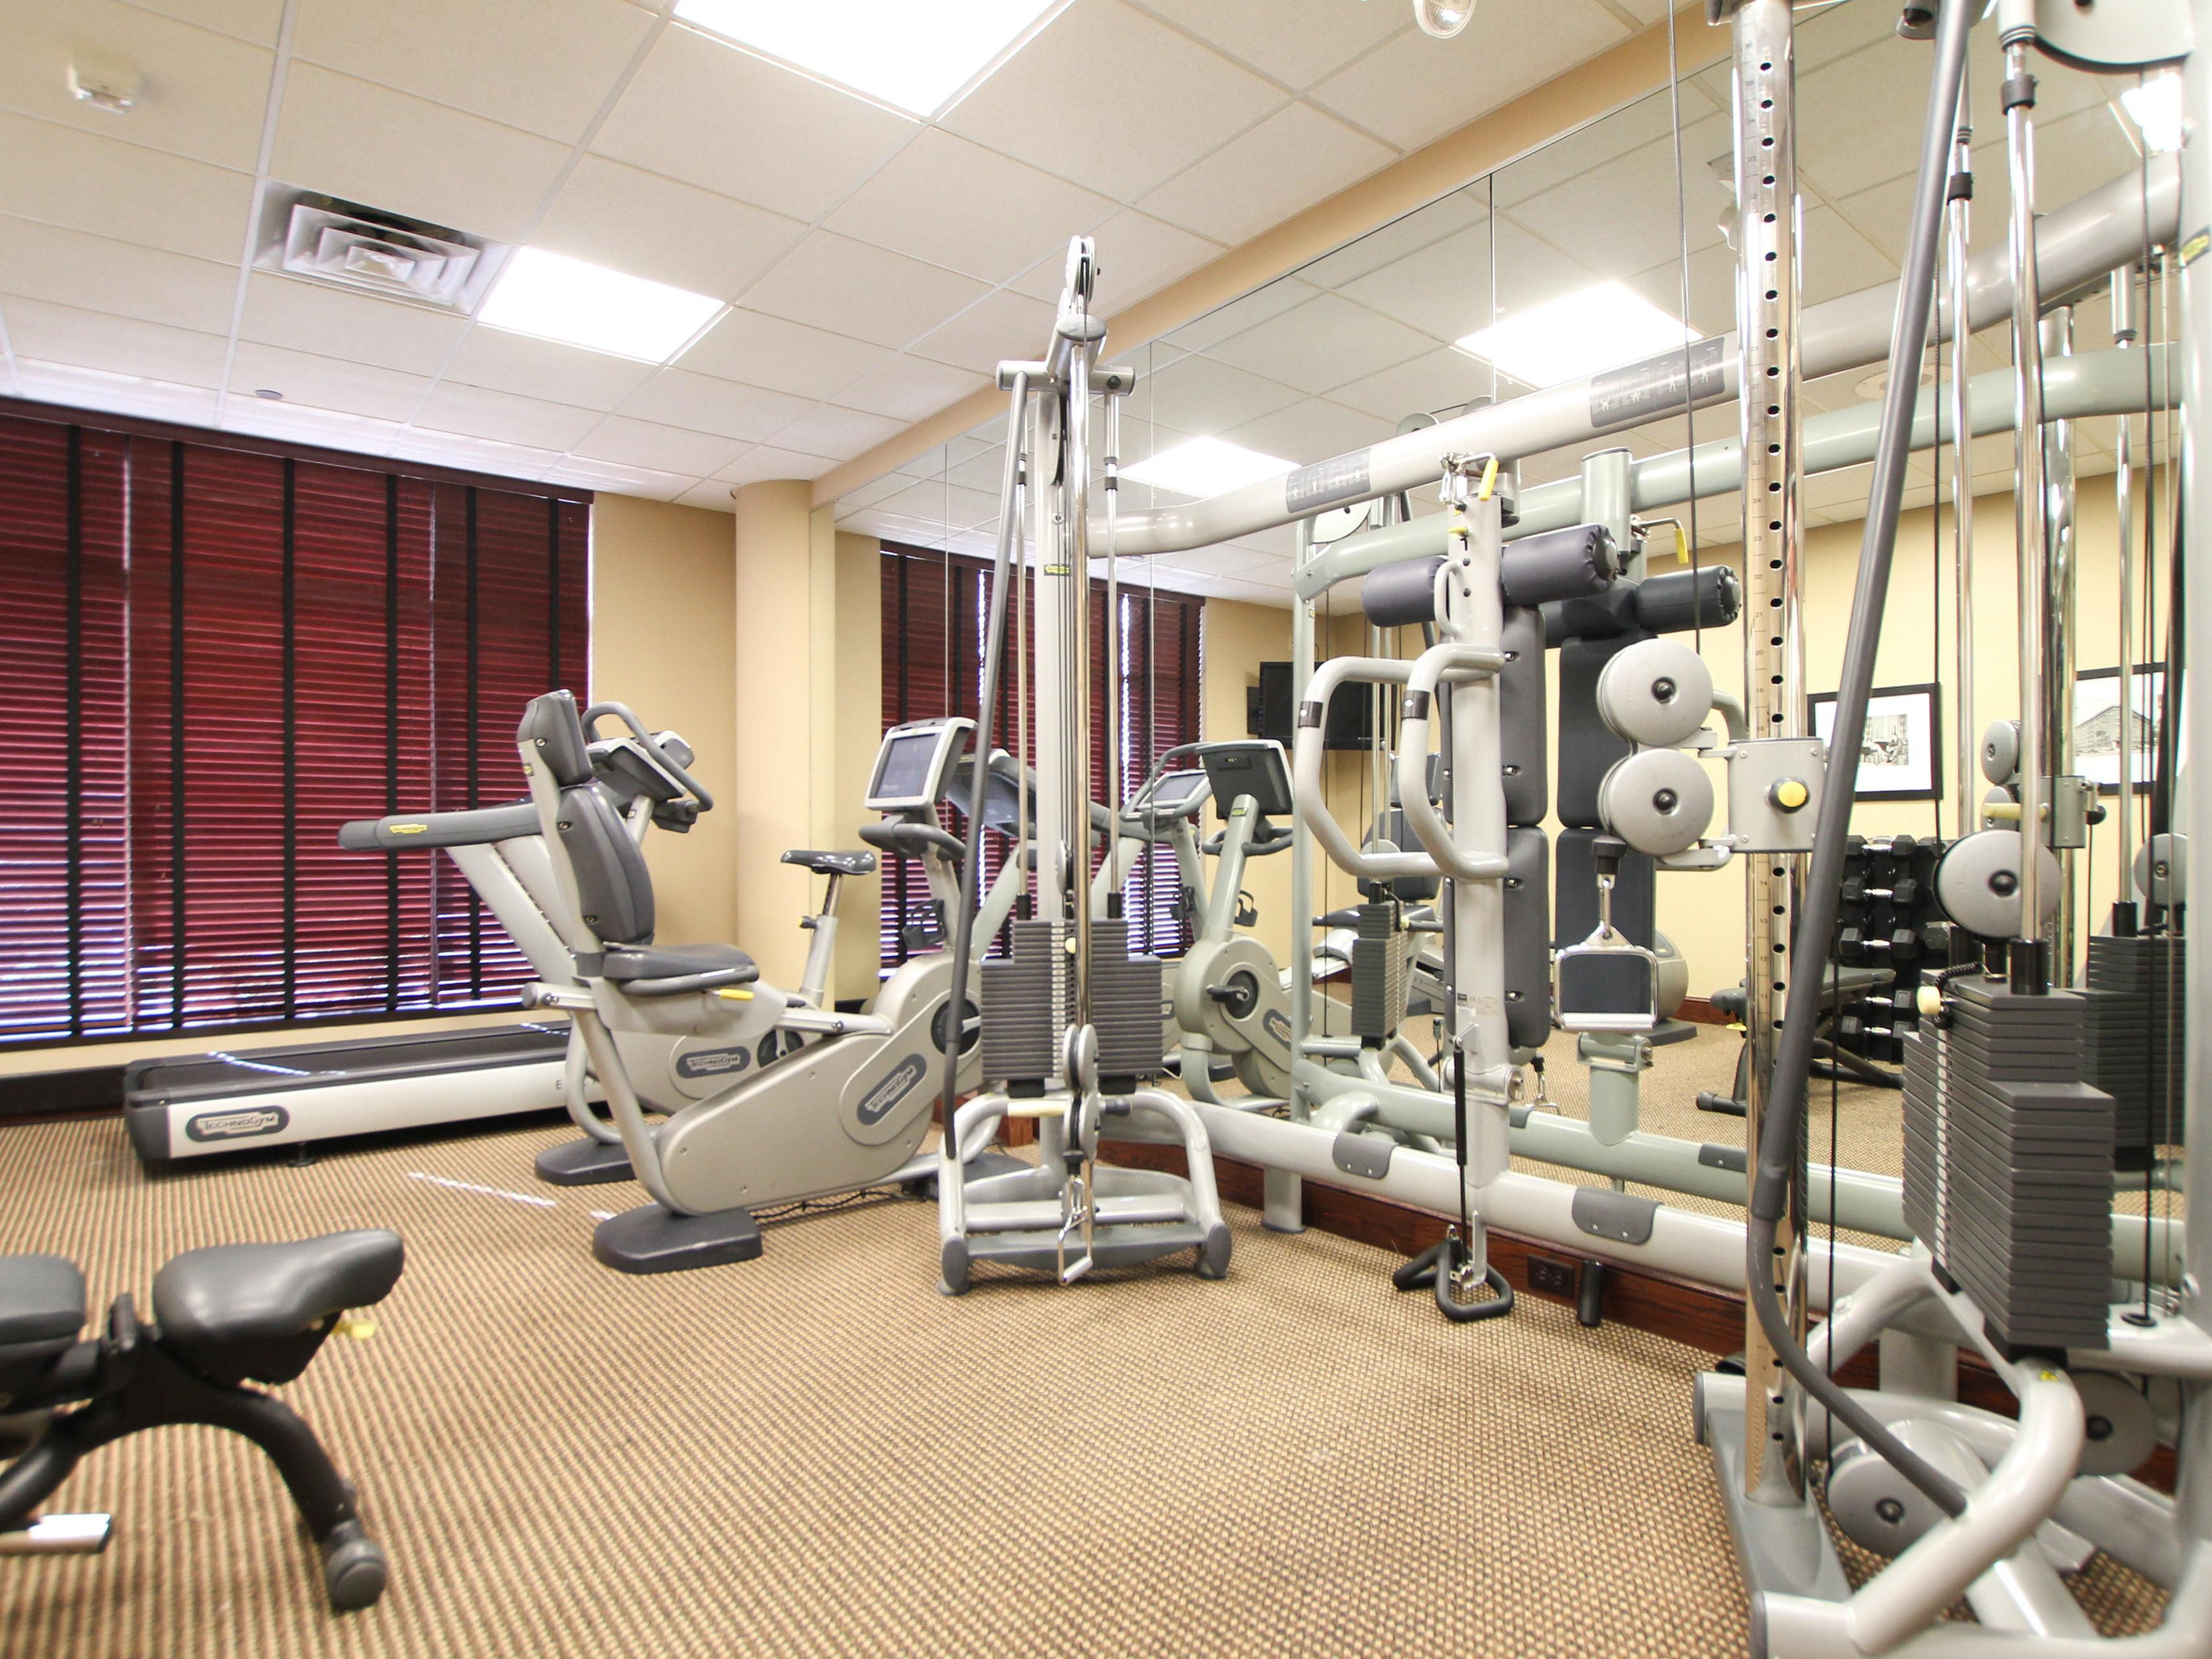 Stay Active with our fitness equipment at Holiday Inn Eagan